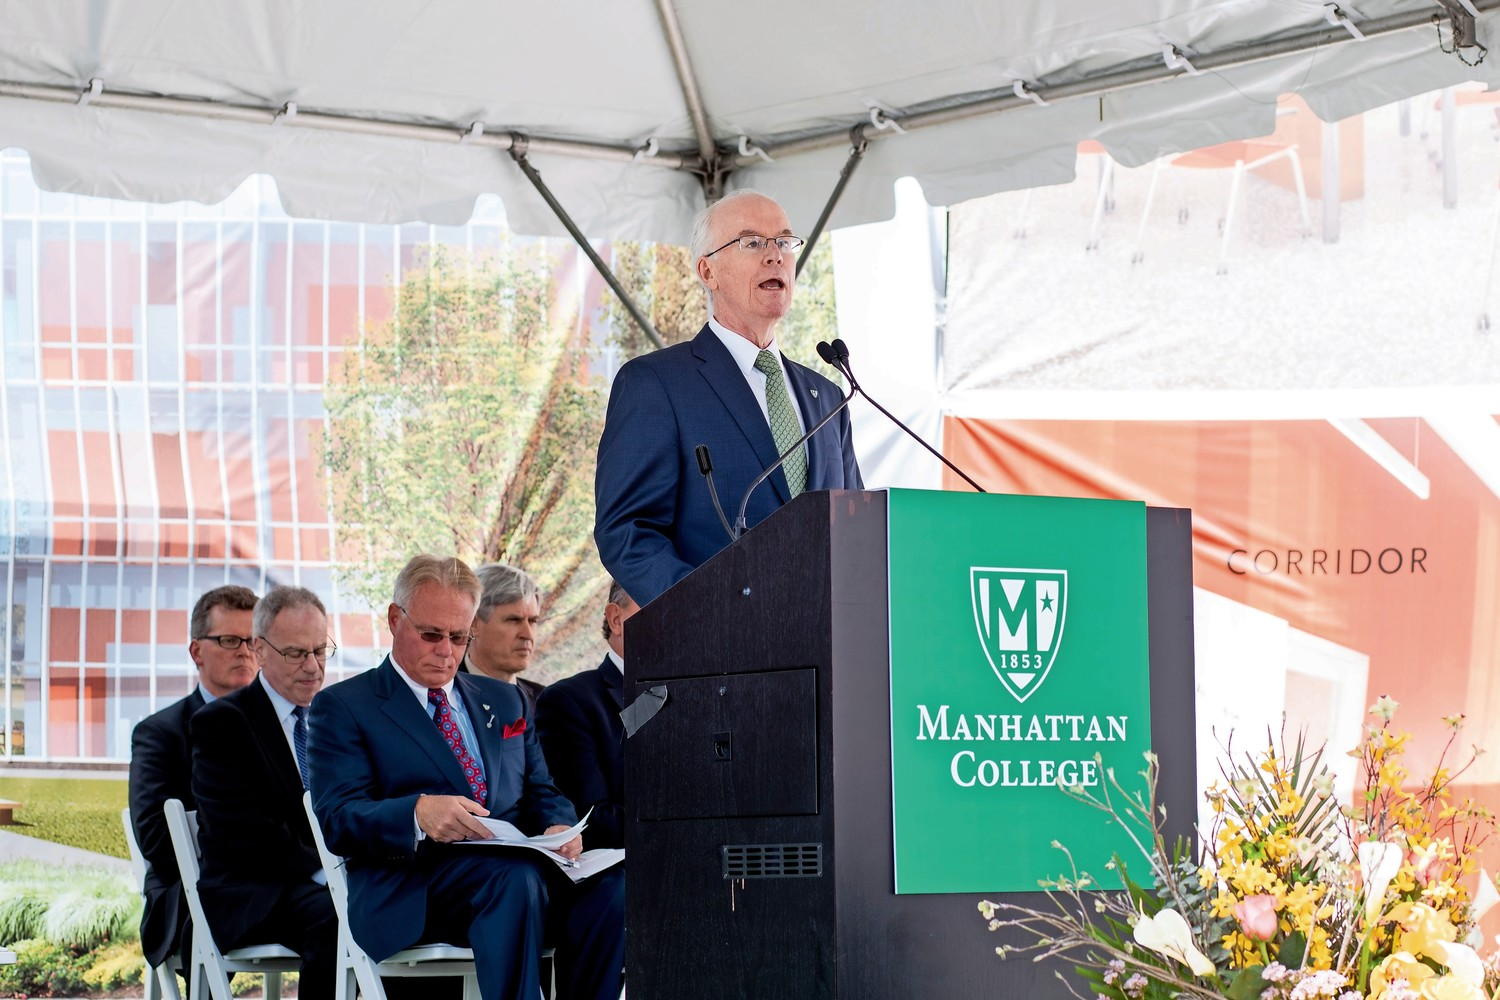 Manhattan College president Brennan O'Donnell speaks at the groundbreaking ceremony for the Patricia and Cornelius J. Higgins '62 Engineering and Science Center. The new center is expected to be completed in 2020.